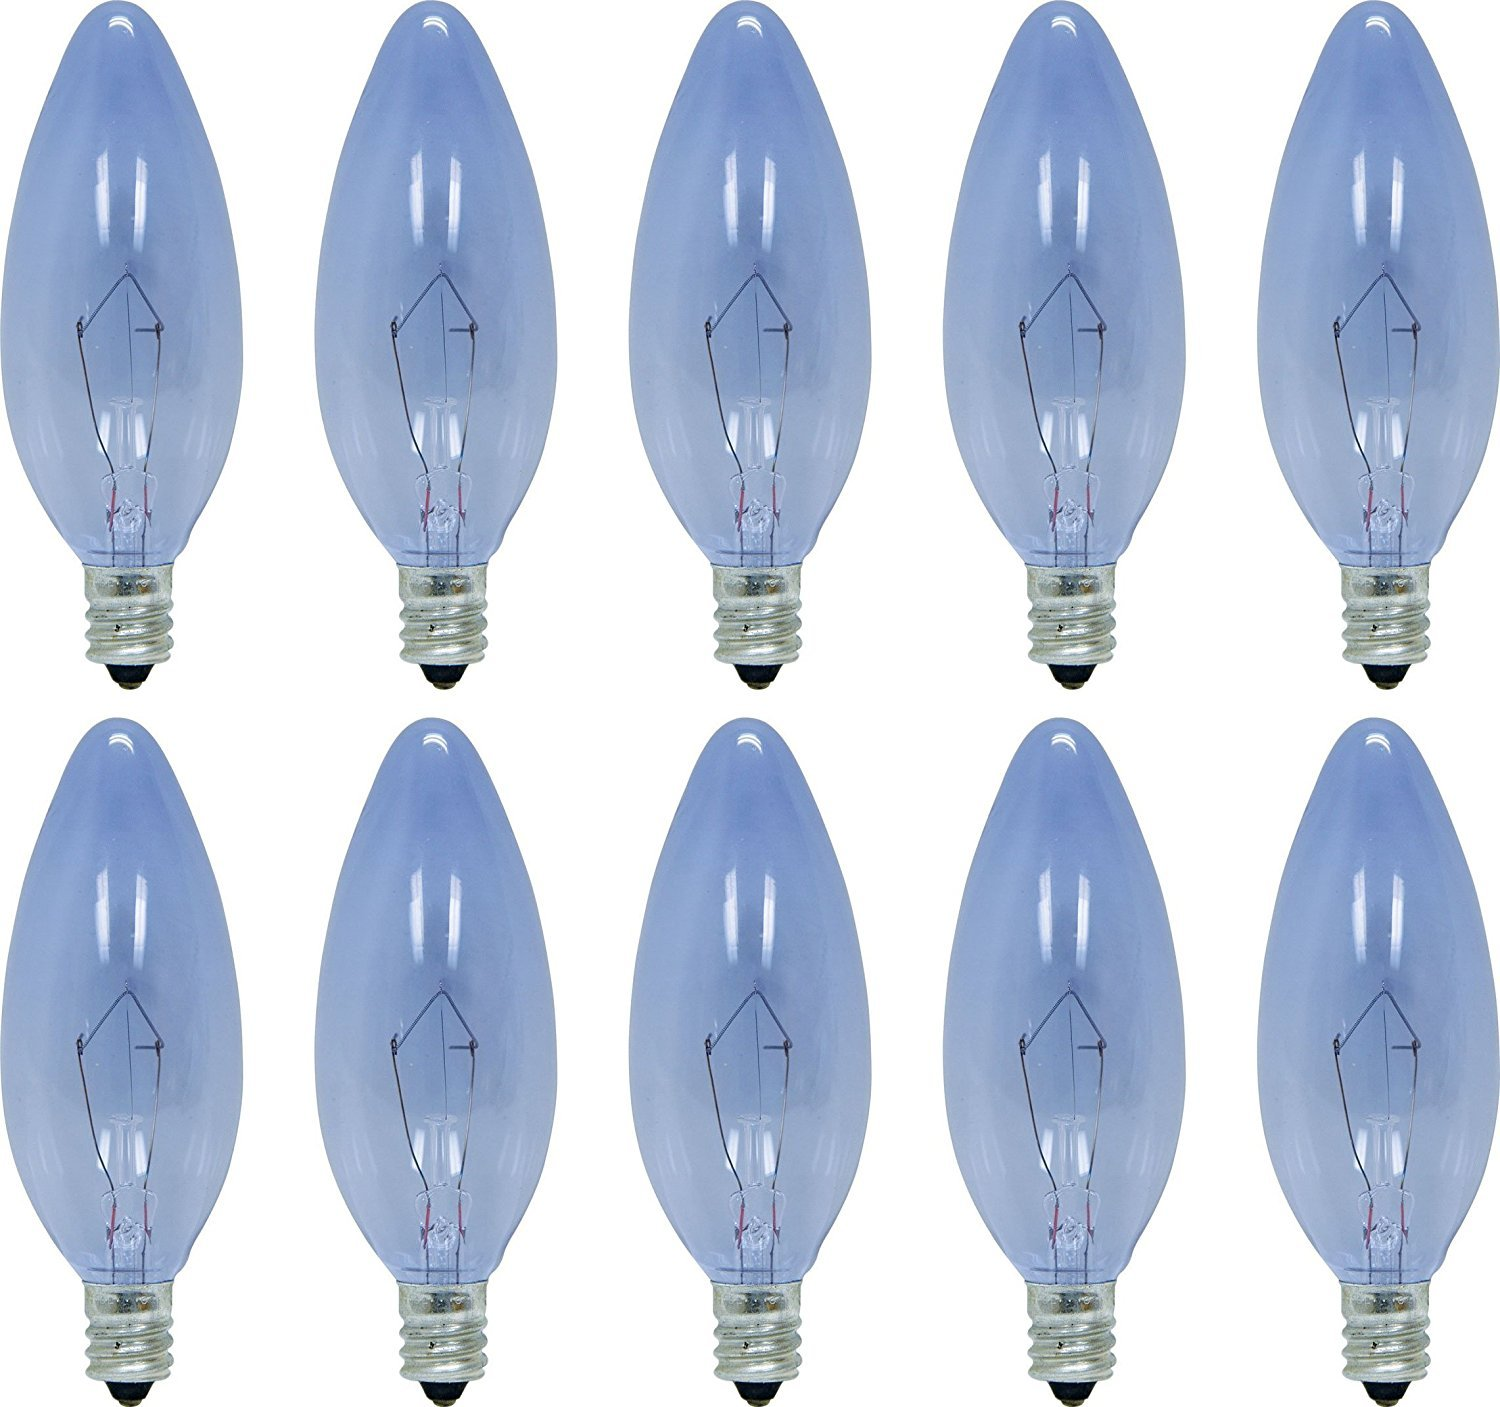 GE Lighting 48702 40-Watt 230-Lumen Blunt Tip Light Bulb with Candelabra Base, 24-Pack